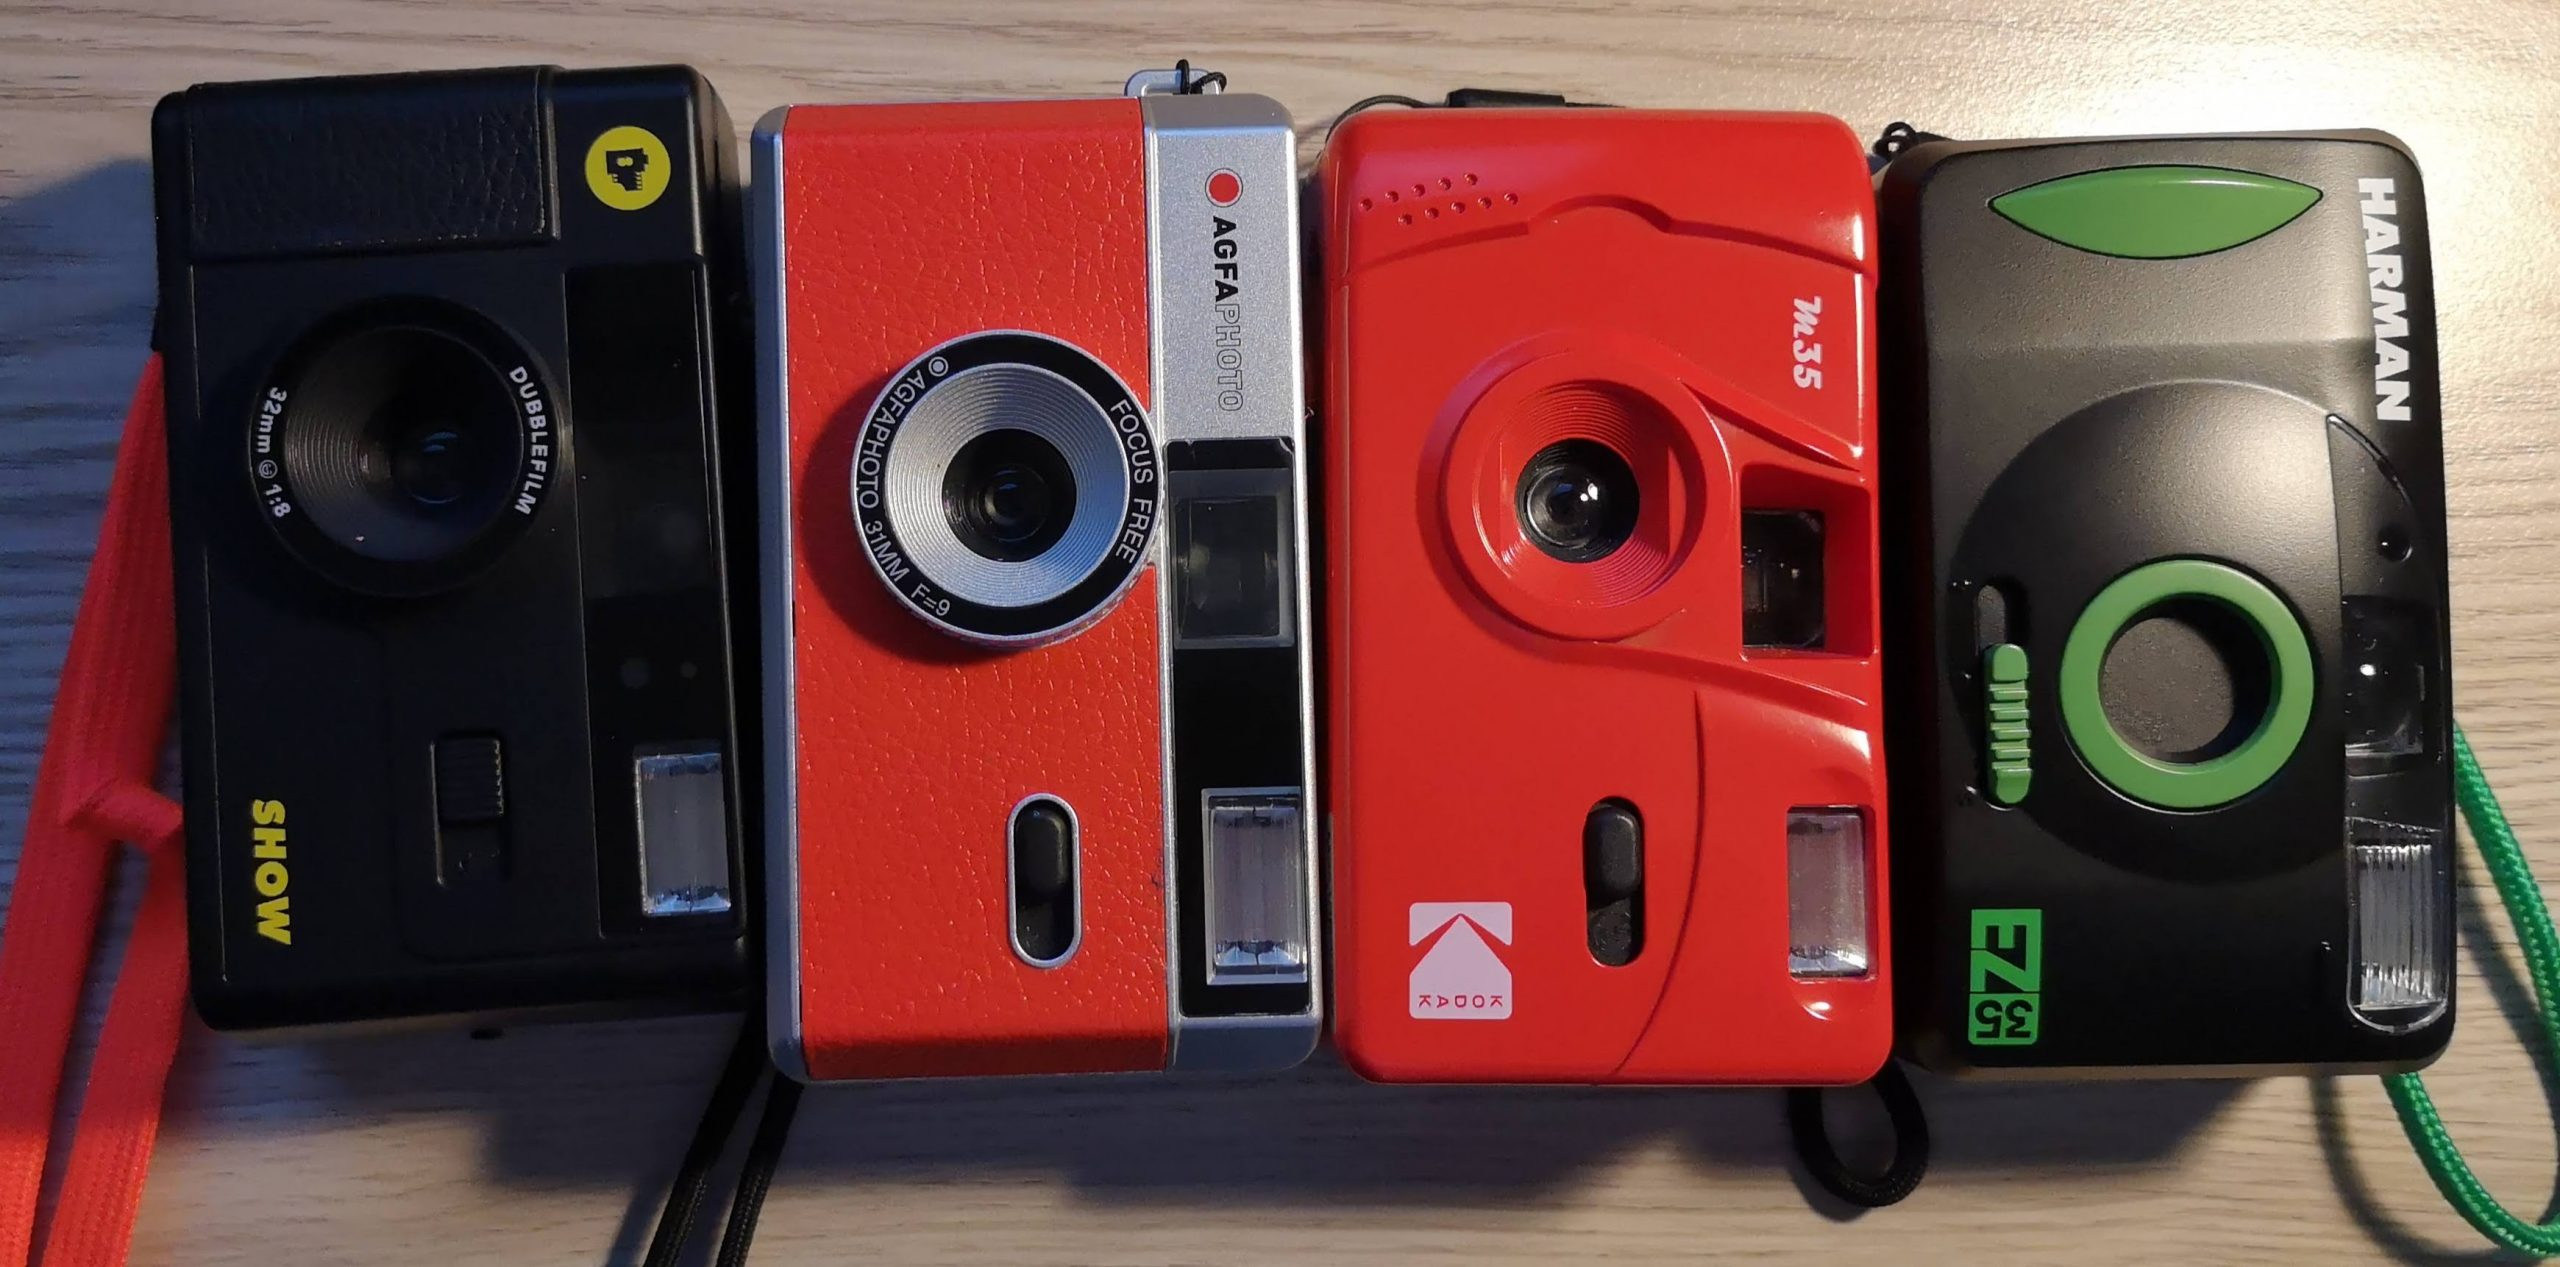 (L) to (R) Dubblefilm Show, Agfaphoto Analogue Phoro Camera, Kodak M35 and Our EZ35.